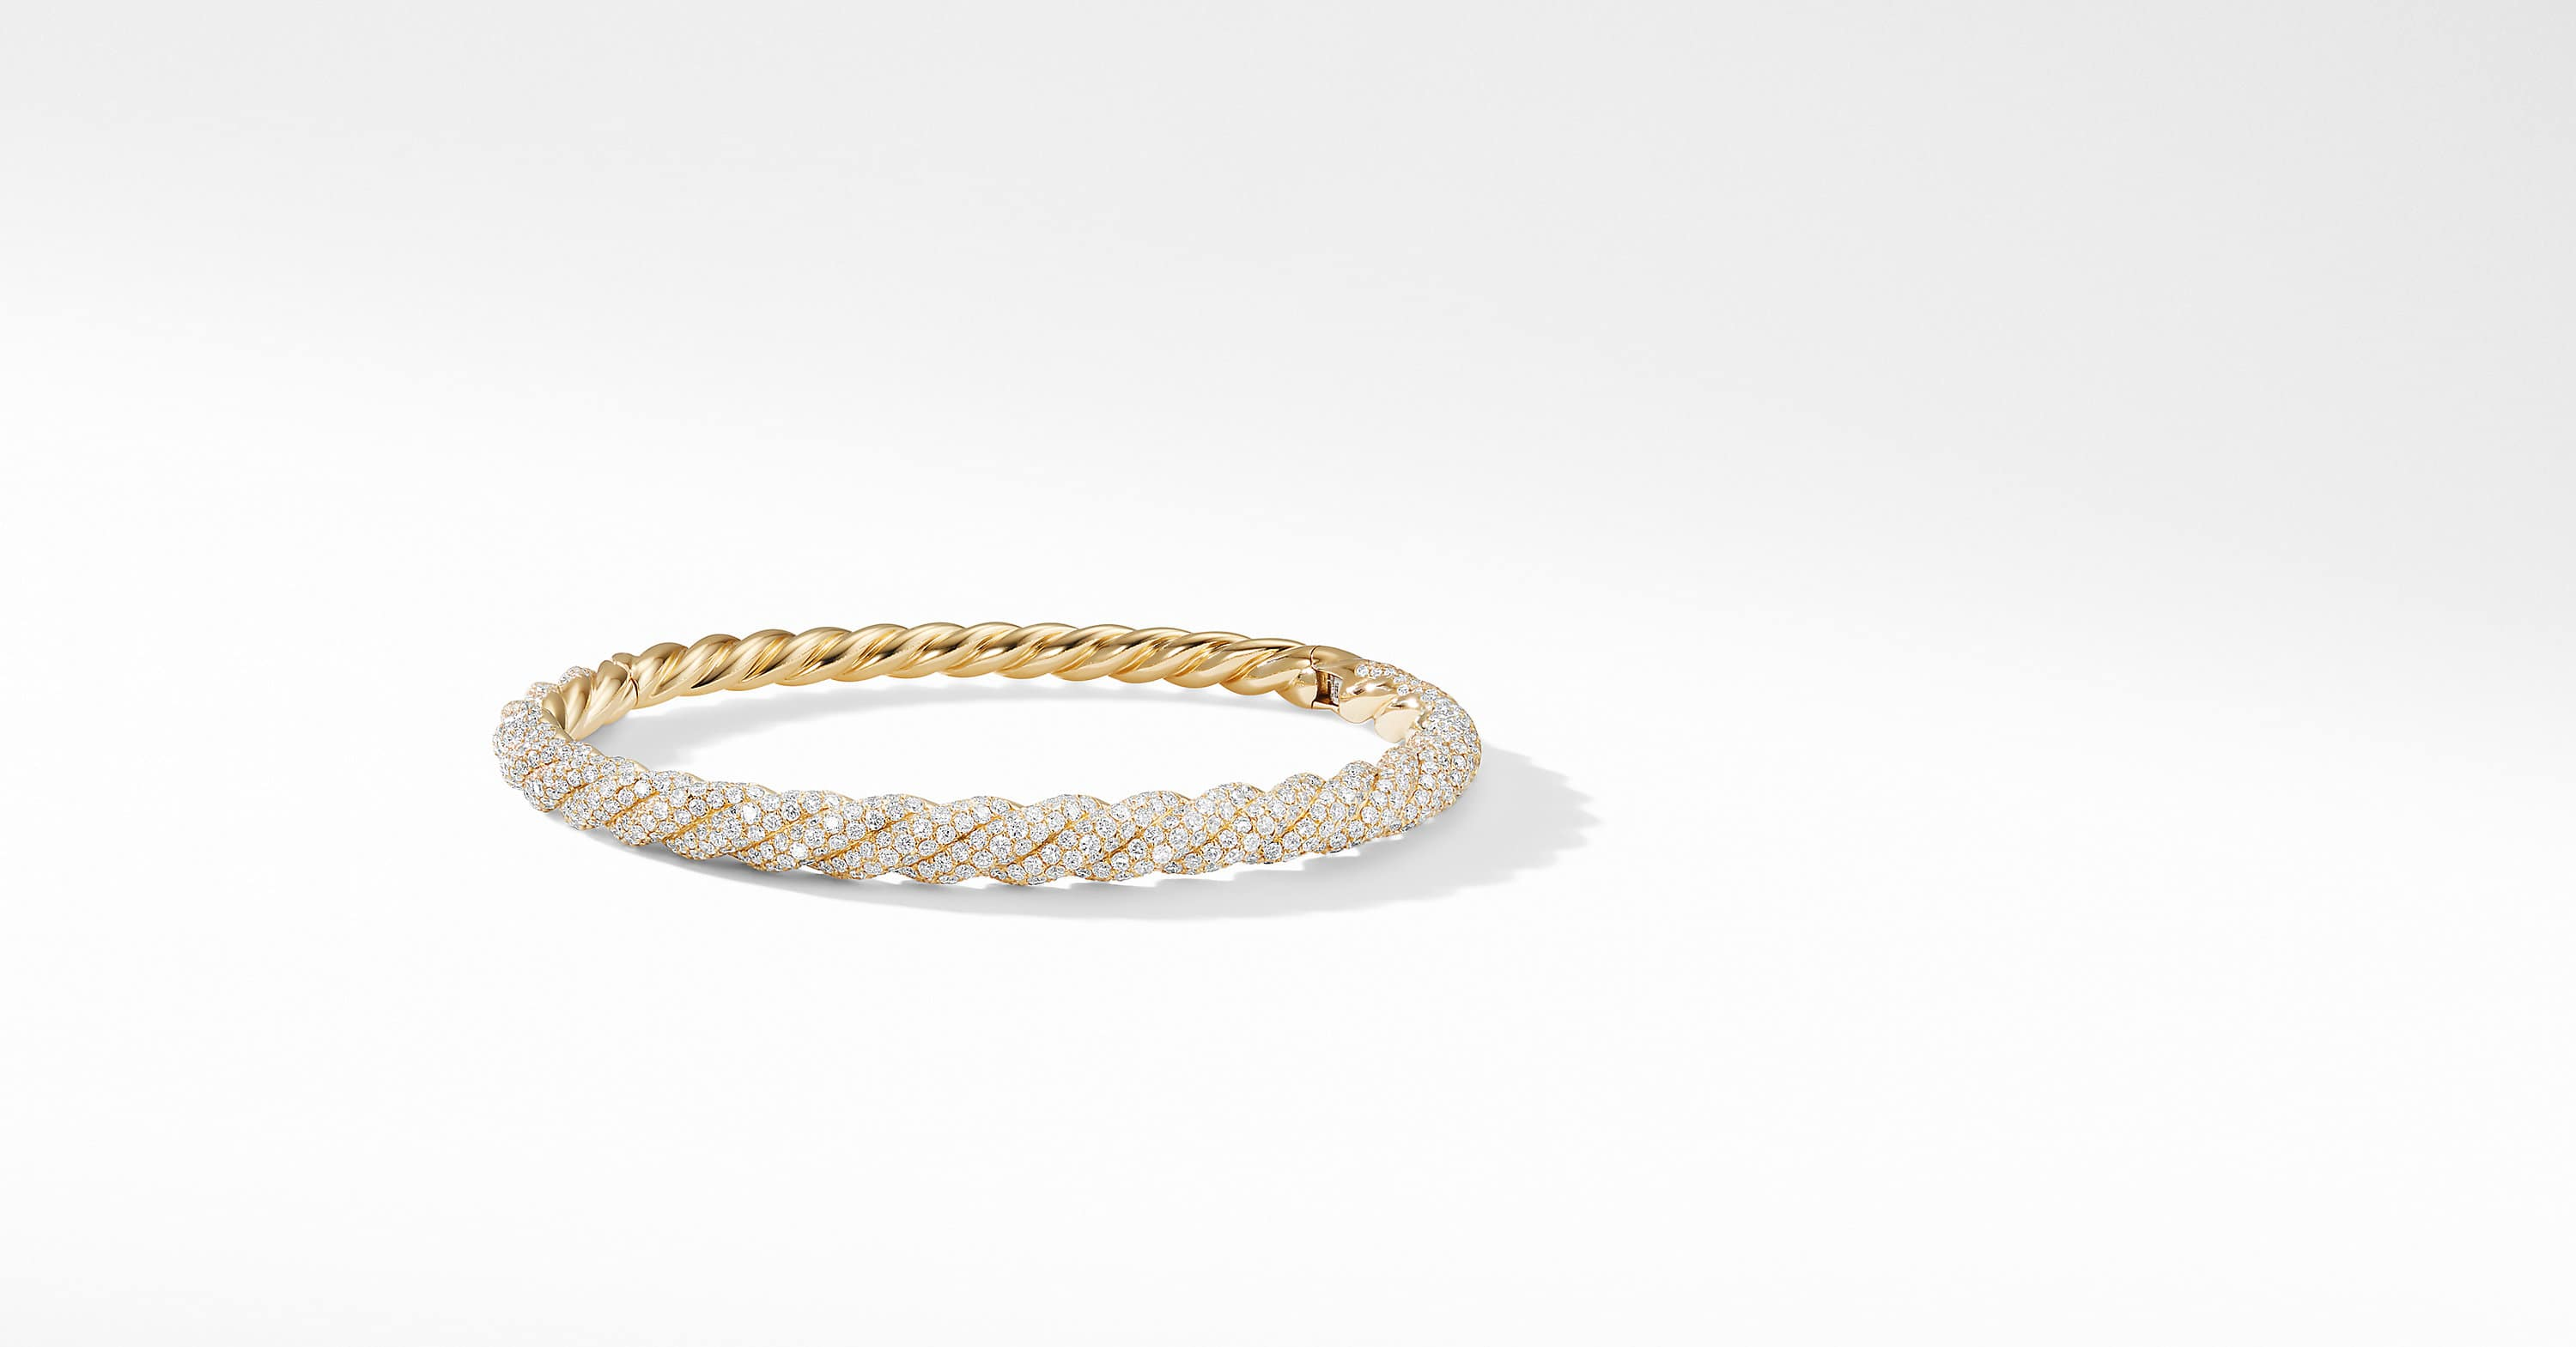 Stax Twist Bracelet in 18K Yellow Gold with Diamonds, 6.5mm